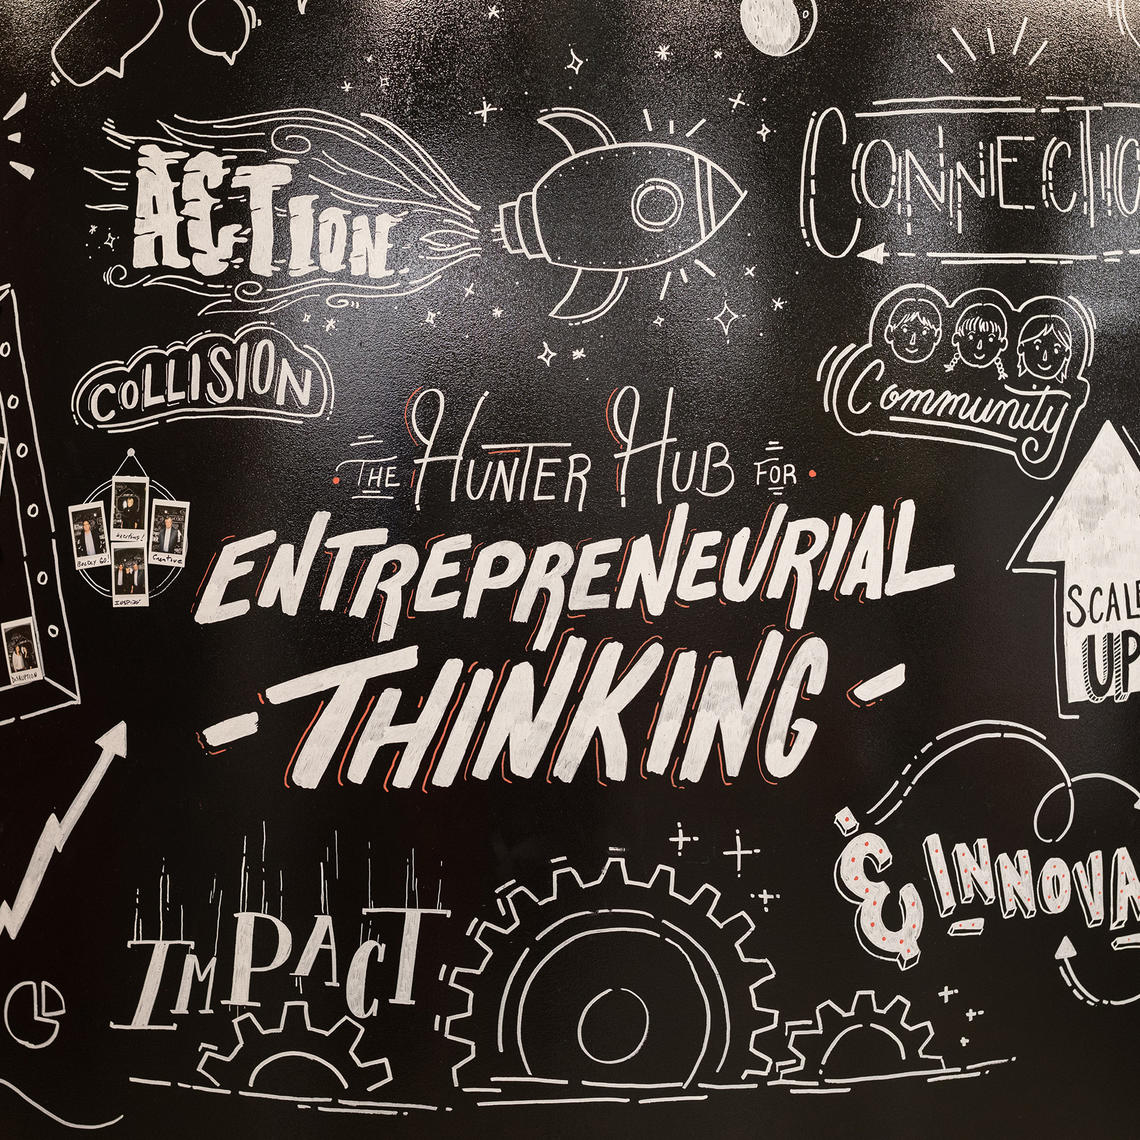 Hunter Hub for Entrepreneurial Thinking